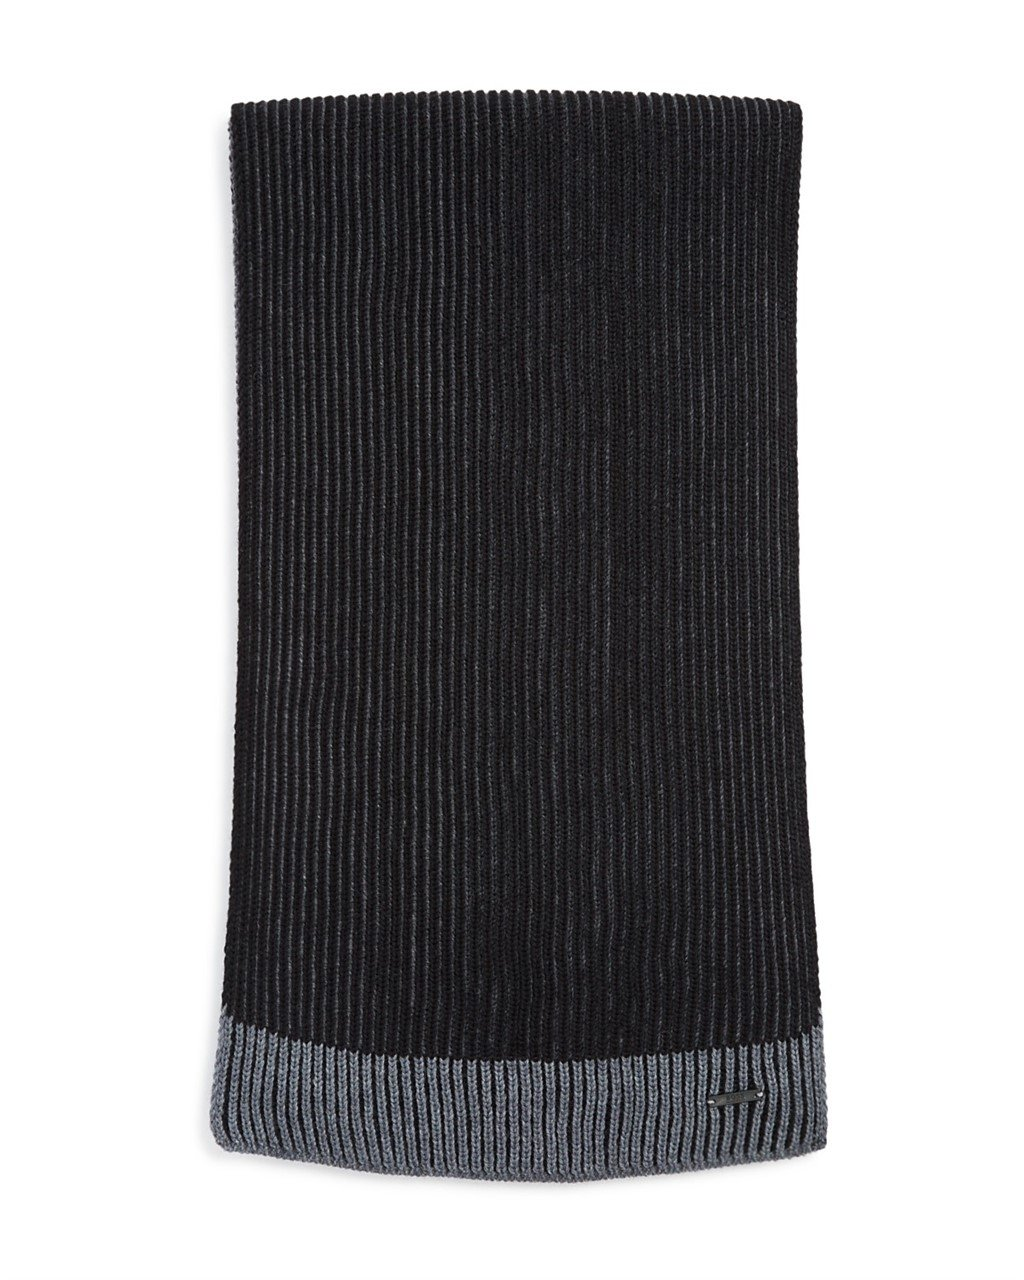 Hugo Boss Balios Two-Color Reversible ribbed knit scarf Extra fine merino wool (Black)